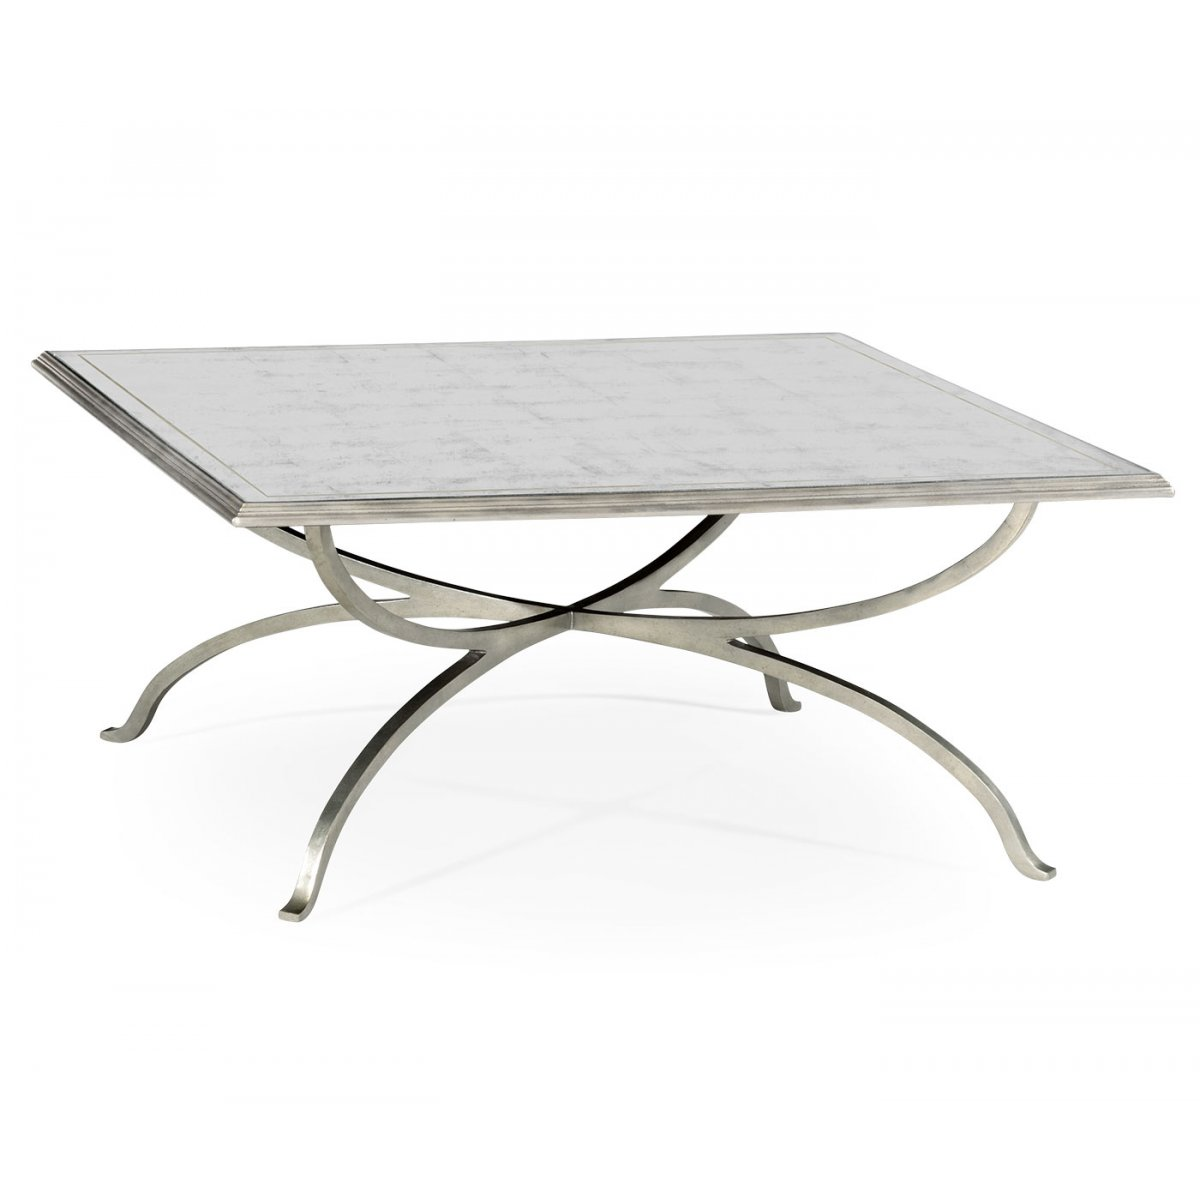 Glass And Silver Square Coffee Table: French Glass Square Coffee Table, Silver